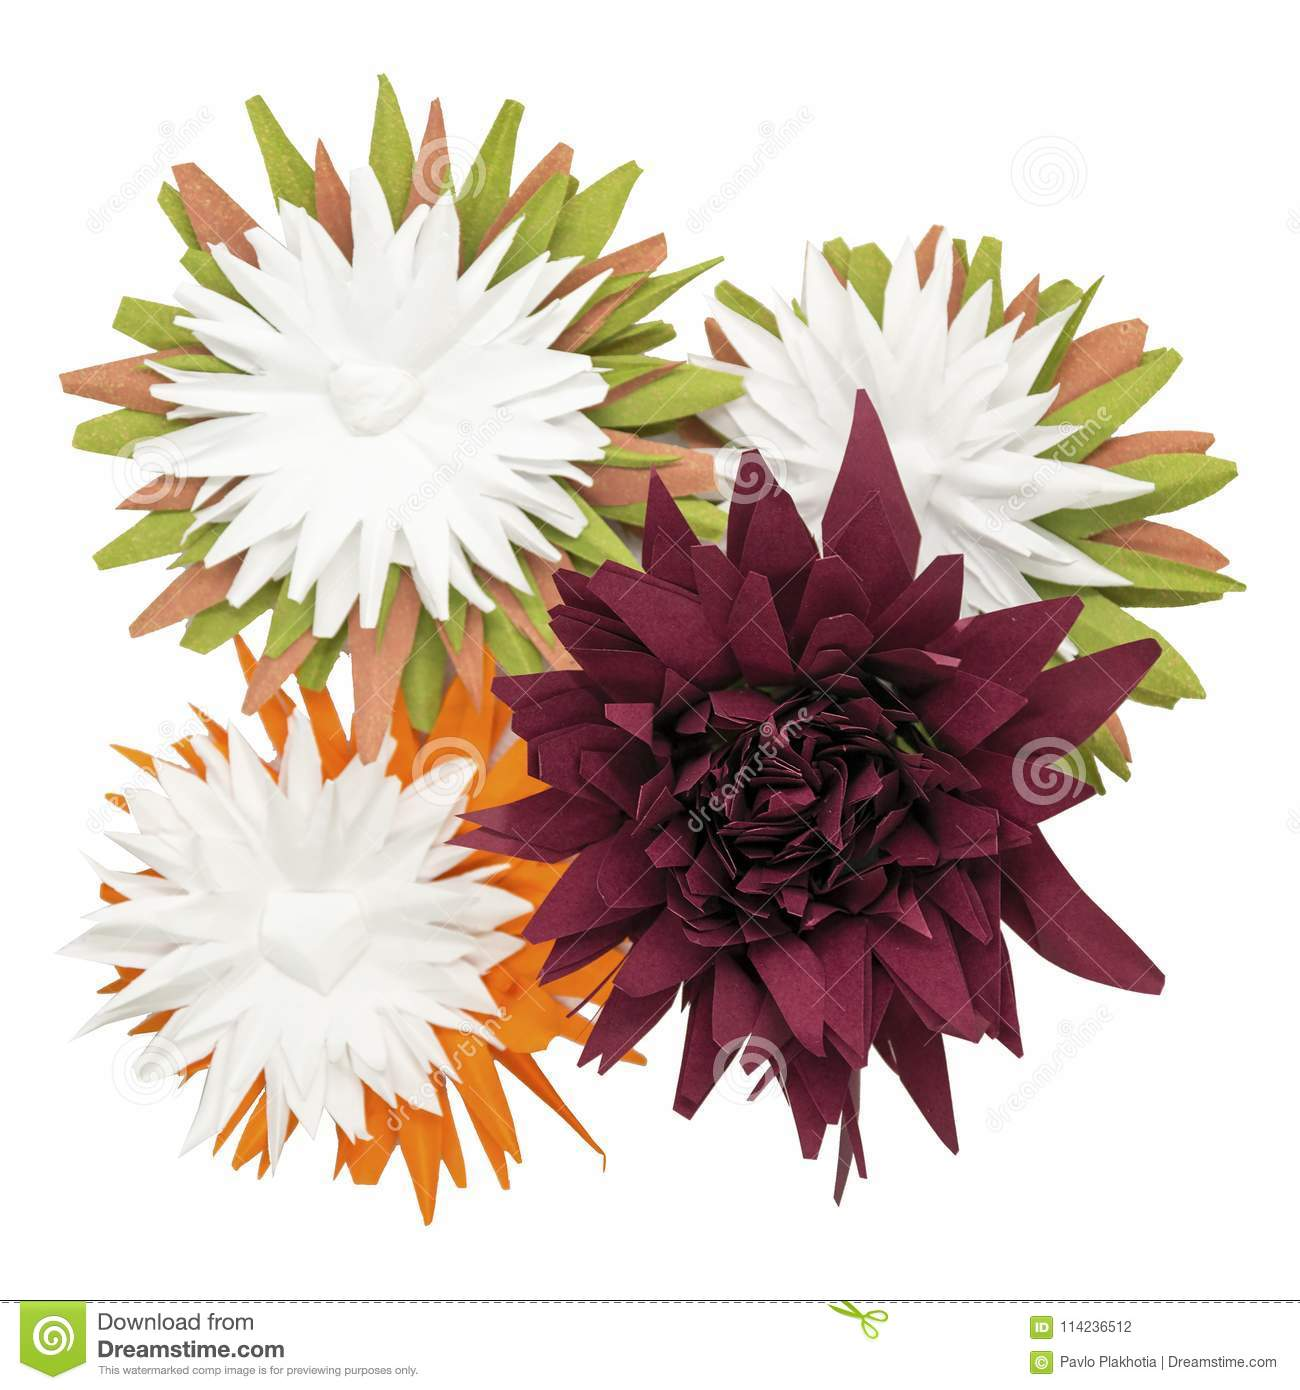 Colorful Handmade Paper Flowers On White Background Creative Craft